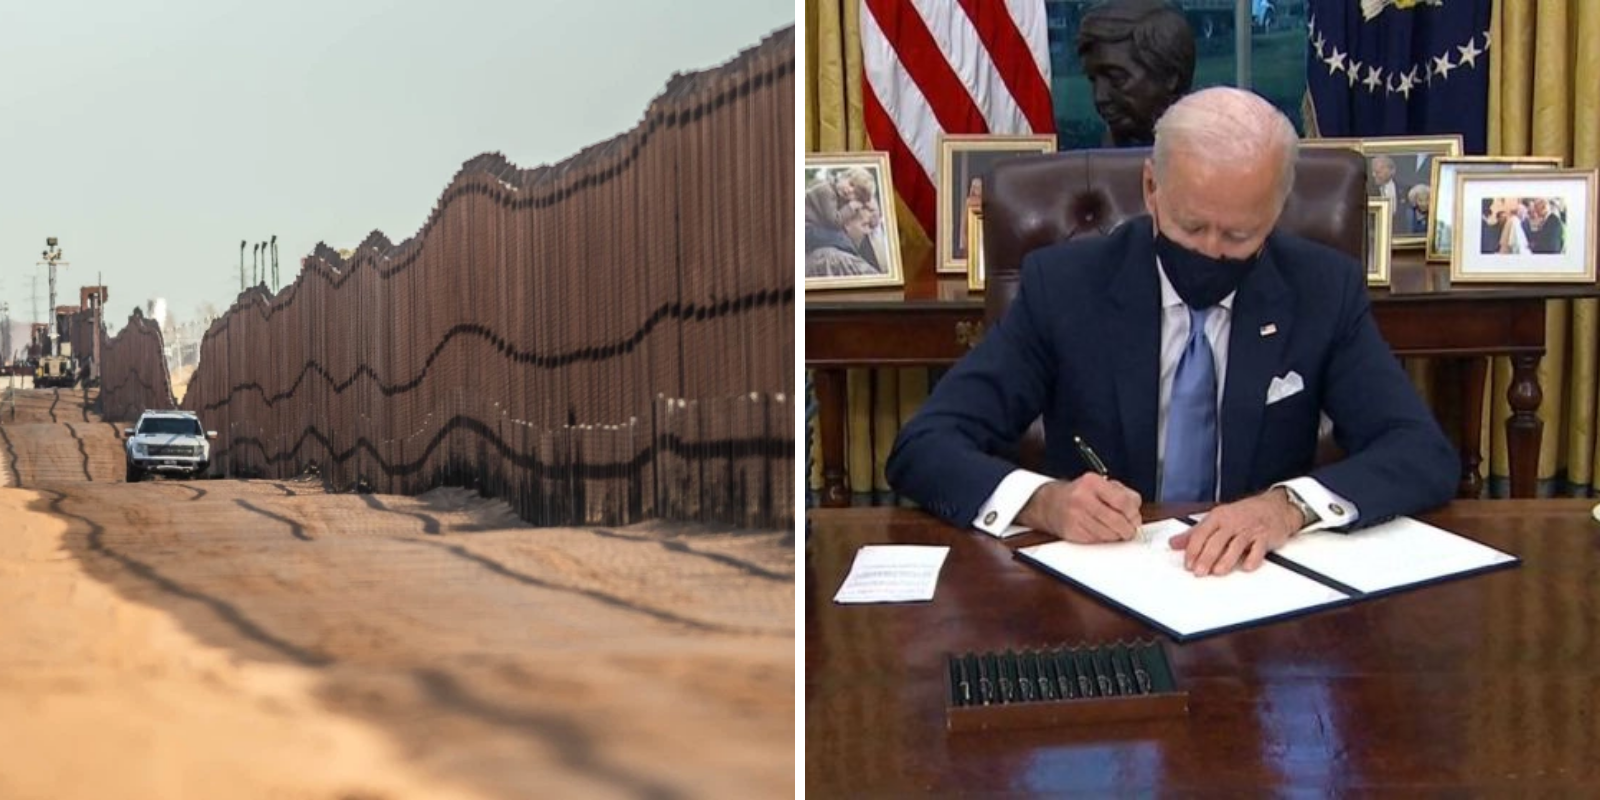 Republicans warn Biden that border crisis could become 'catastrophic overnight'